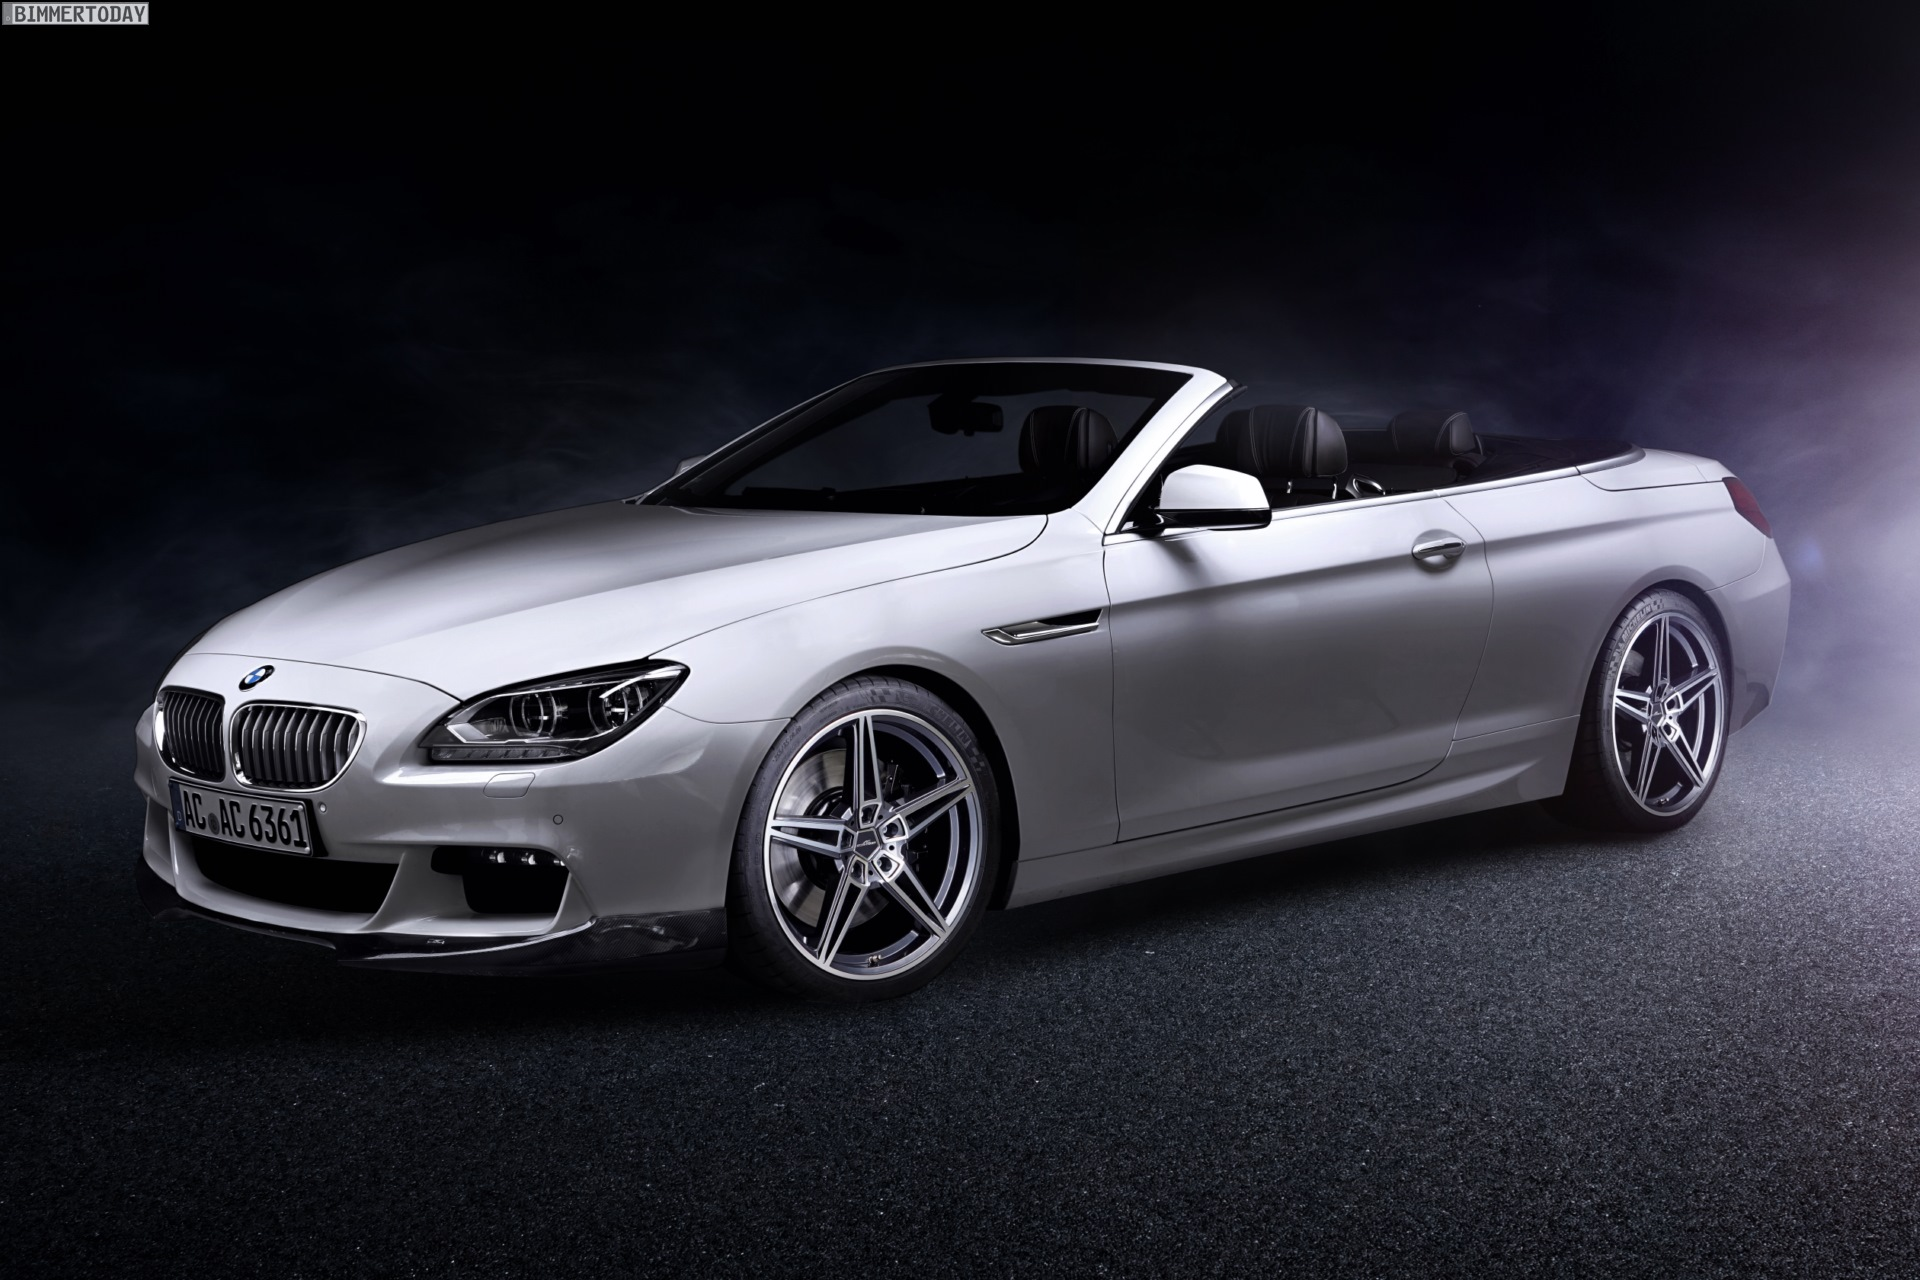 Ac Schnitzer Ac1 Wheels Available For Many Bmw Models